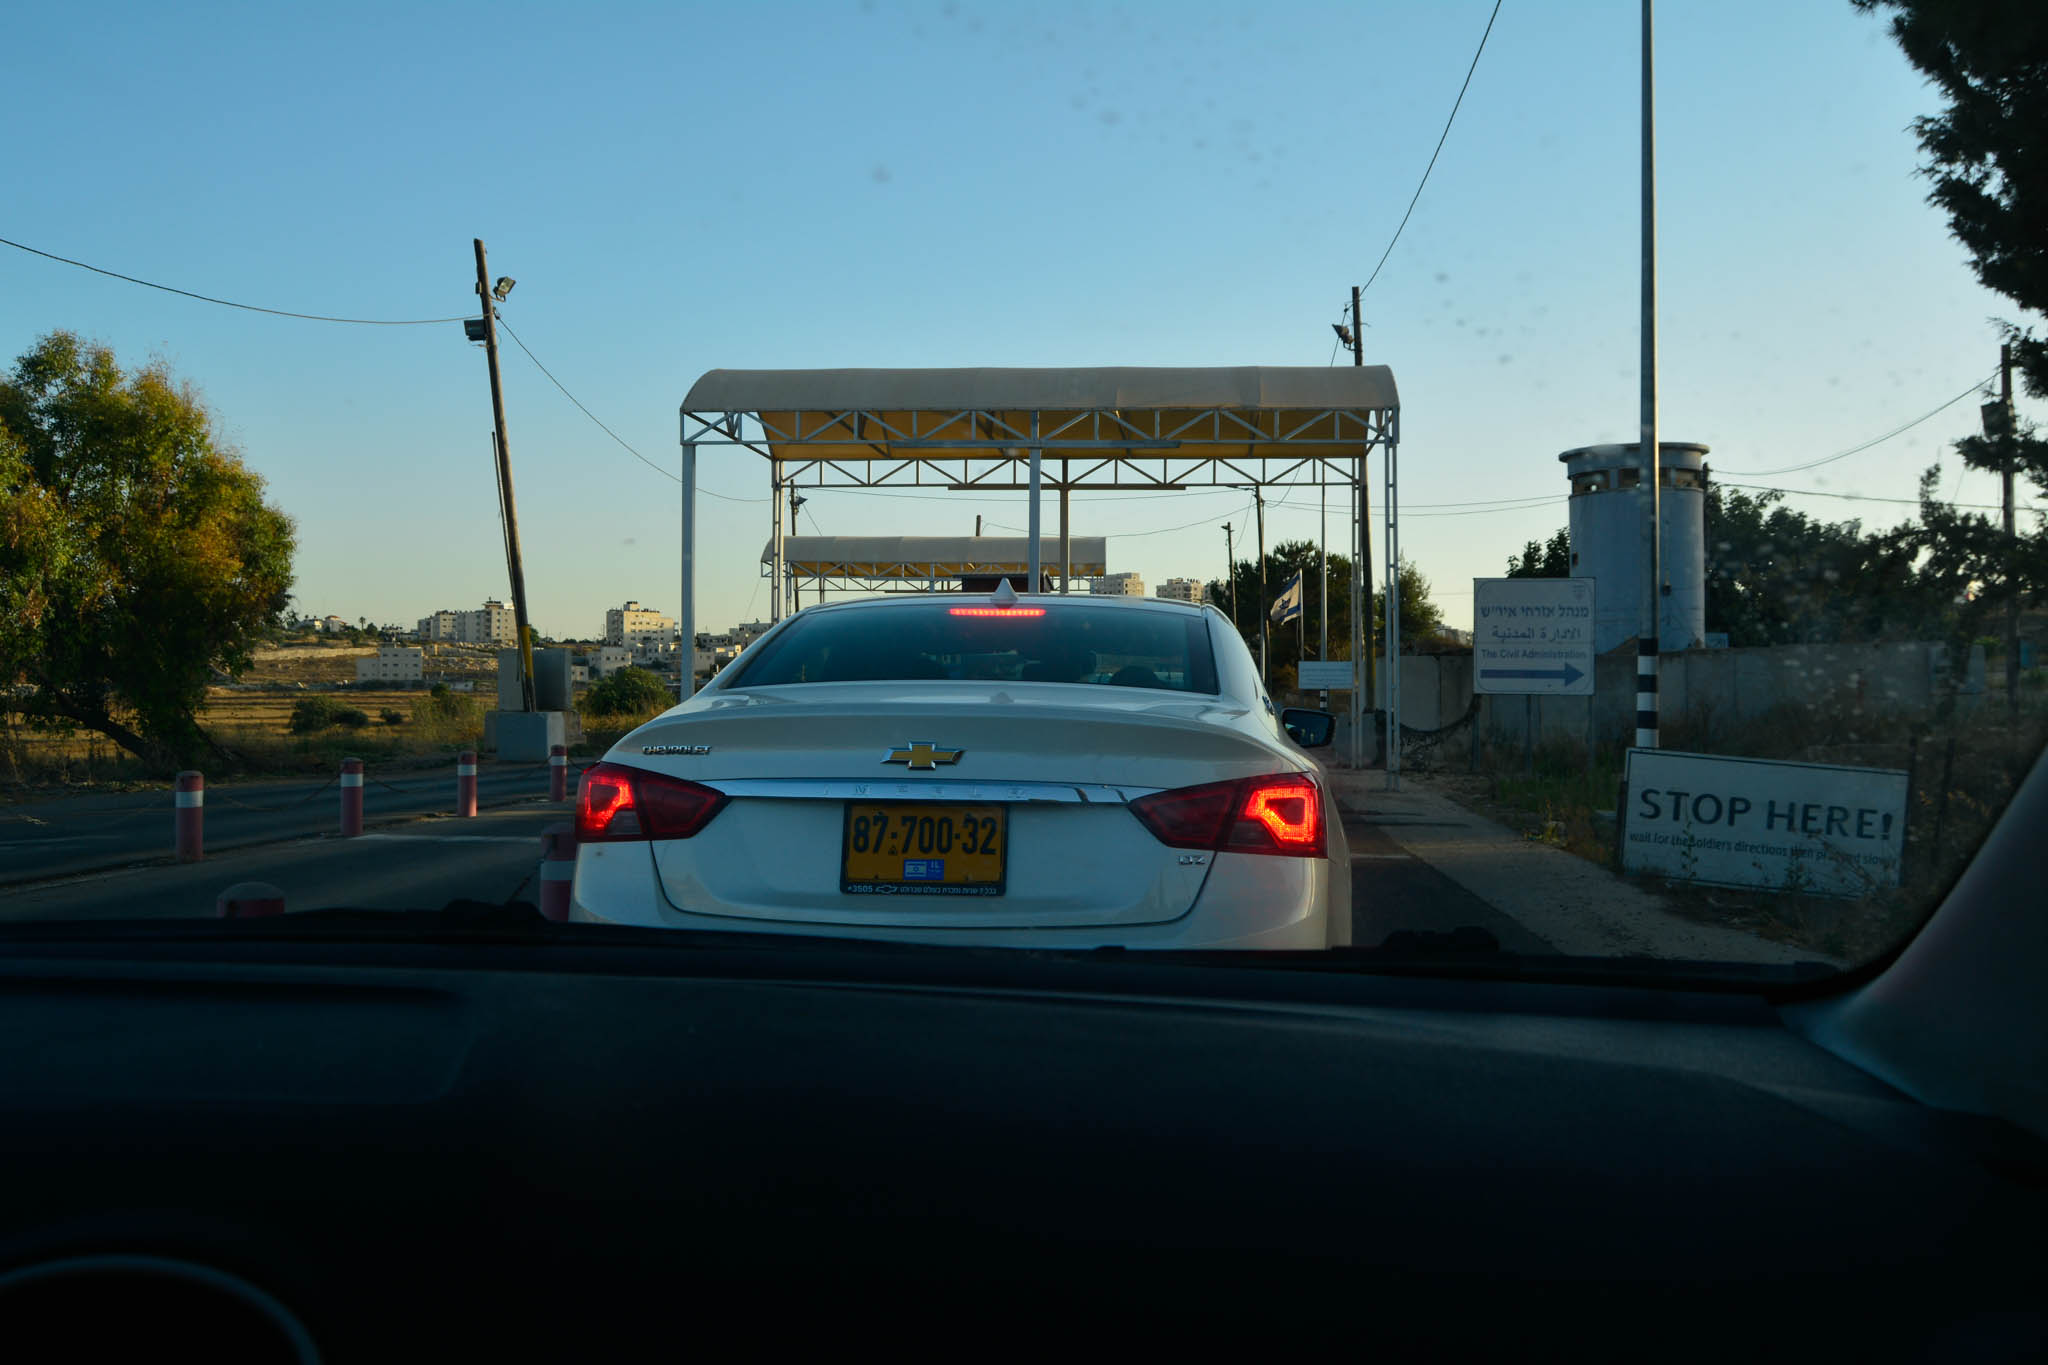 This is the checkpoint at the Israeli Settlement. Special permits are required for Palestinians who want to use this checkpoint.